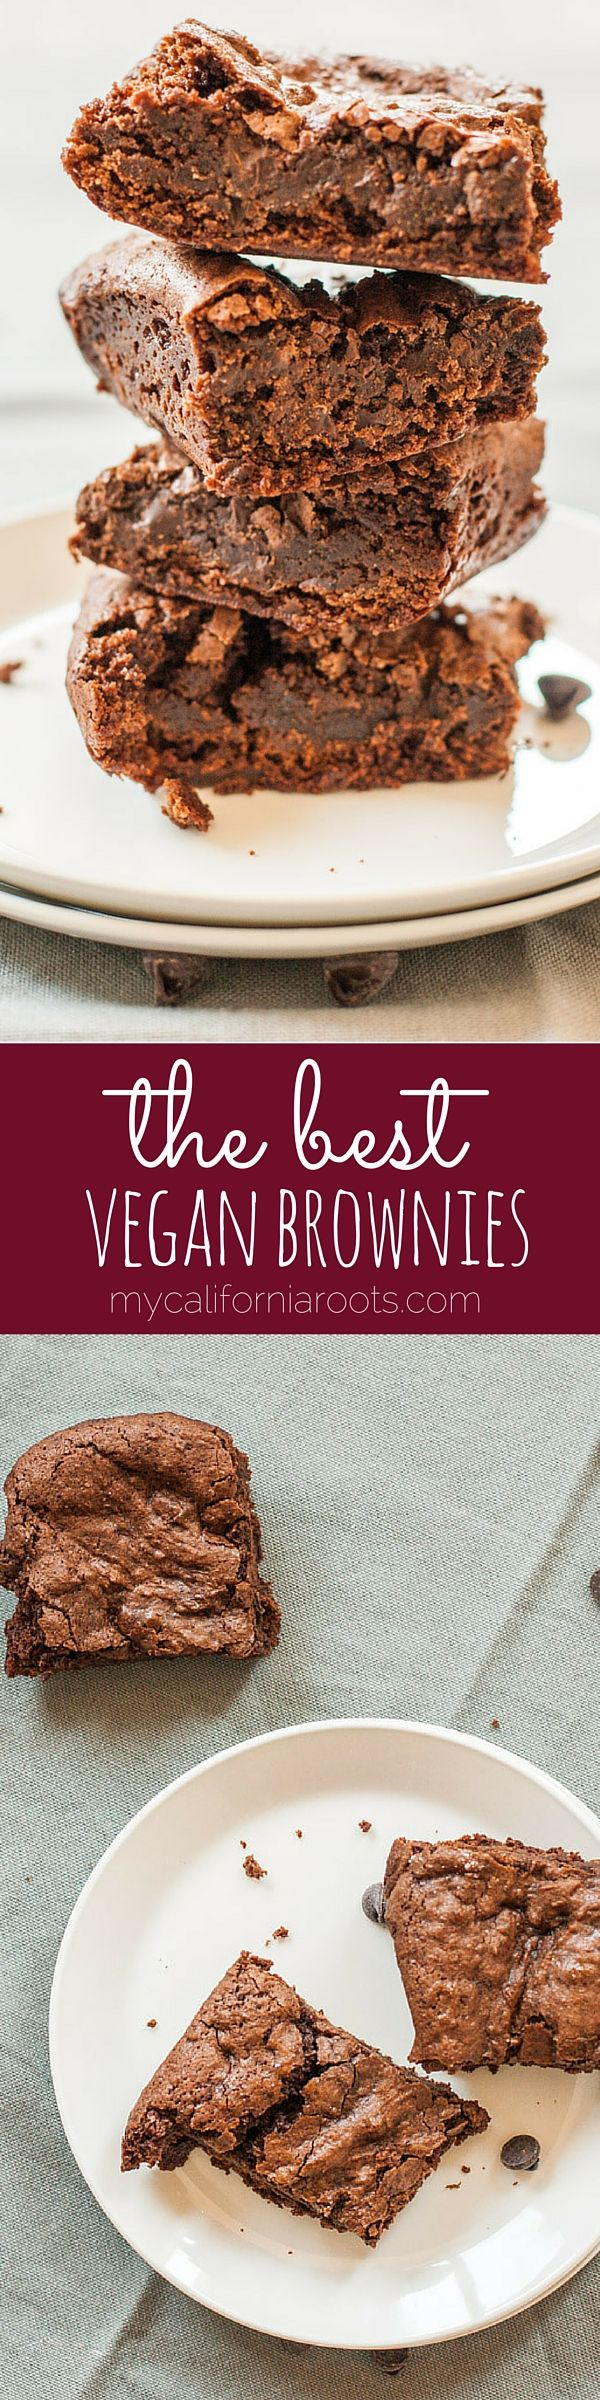 These are THE BEST vegan brownies I've ever had. In fact, I think they just might be the best I've everhad, period! Crunchy top with chewy centers. Totally perfect!